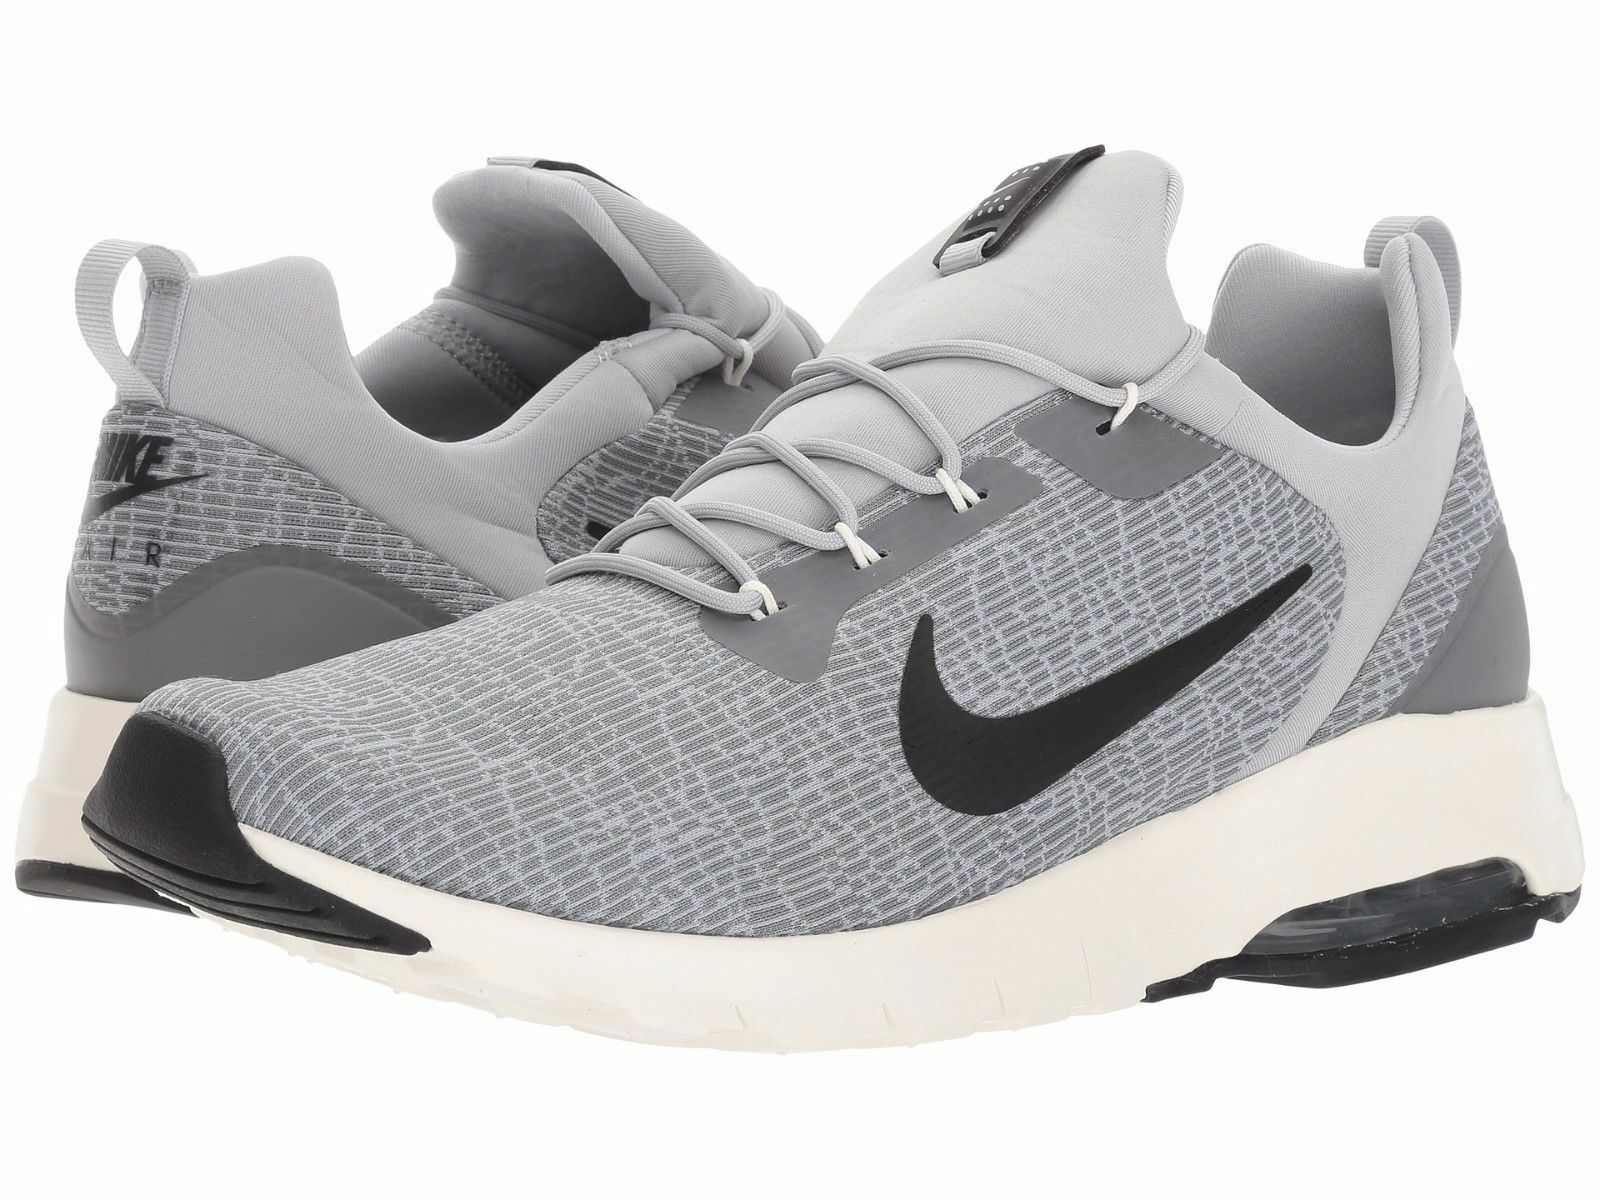 Uomo Nike Air Max Motion Racer Running Wolf Grey/Blk Sizes 8-12 NIB 916771-002